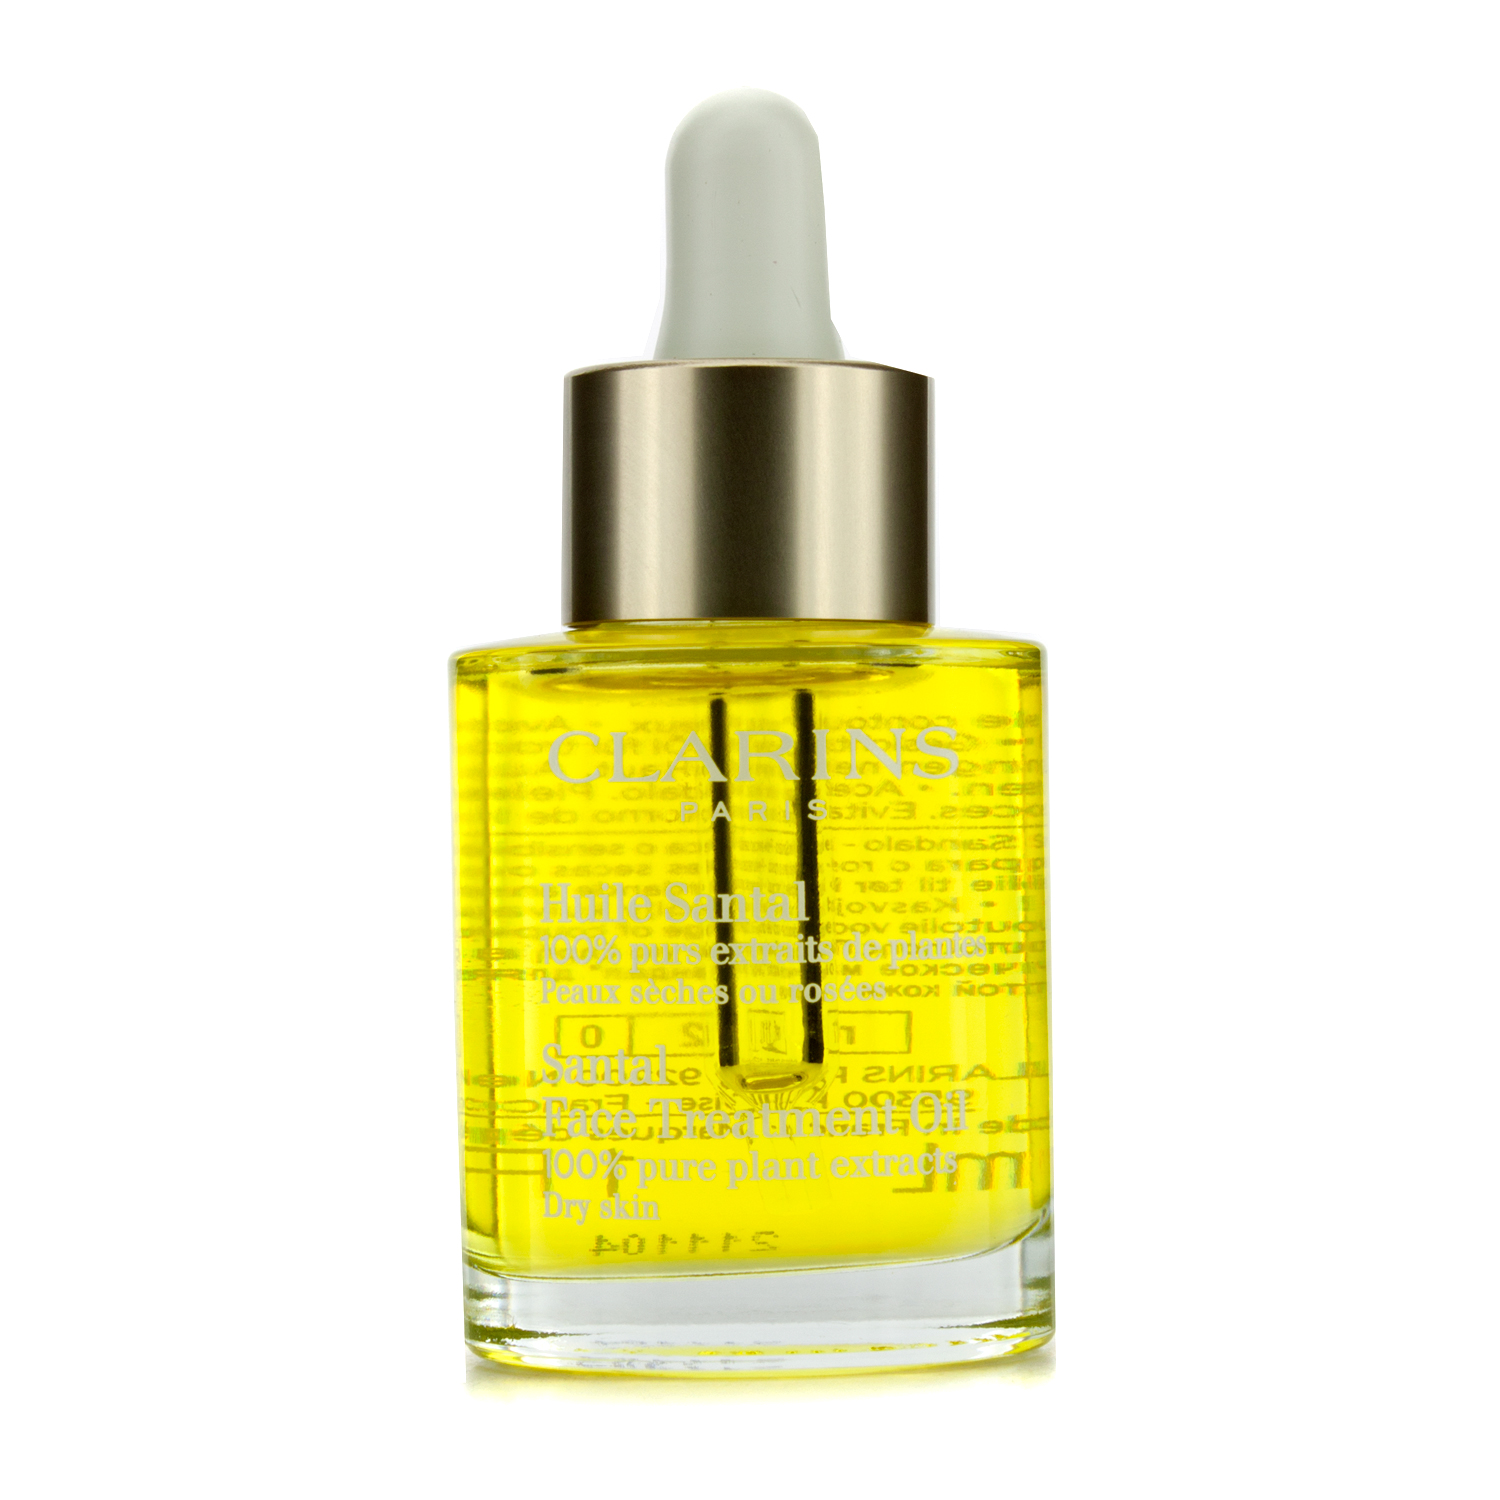 Clarins - Face Treatment Oil - Santal (For Dry Skin) - 30ml/1oz